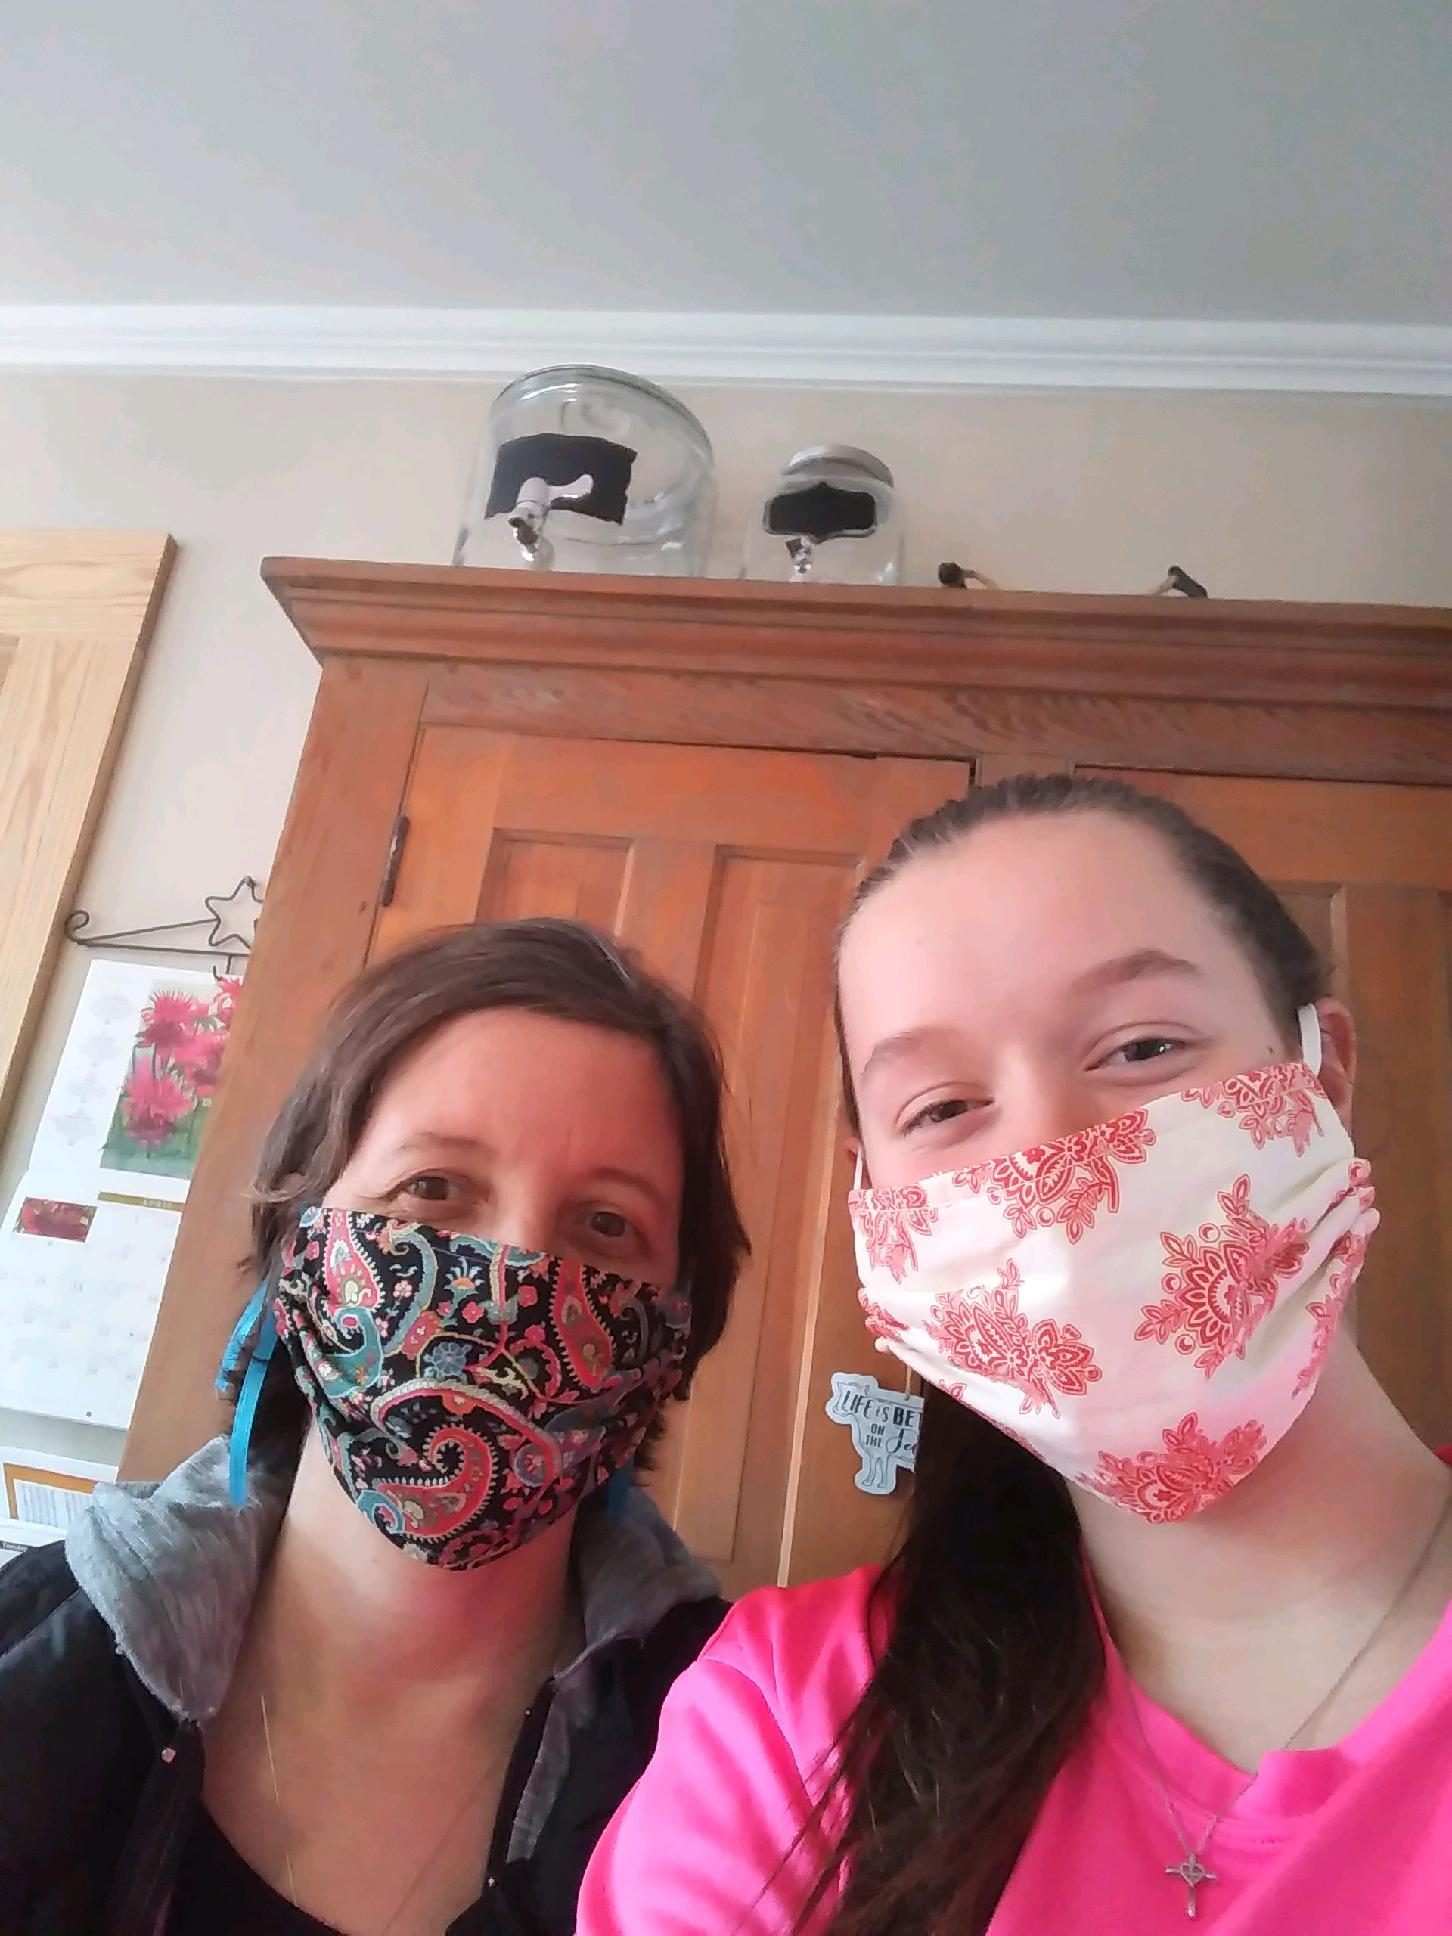 Meg Shivers and her daughter demonstrate the masks they created for Springbrook